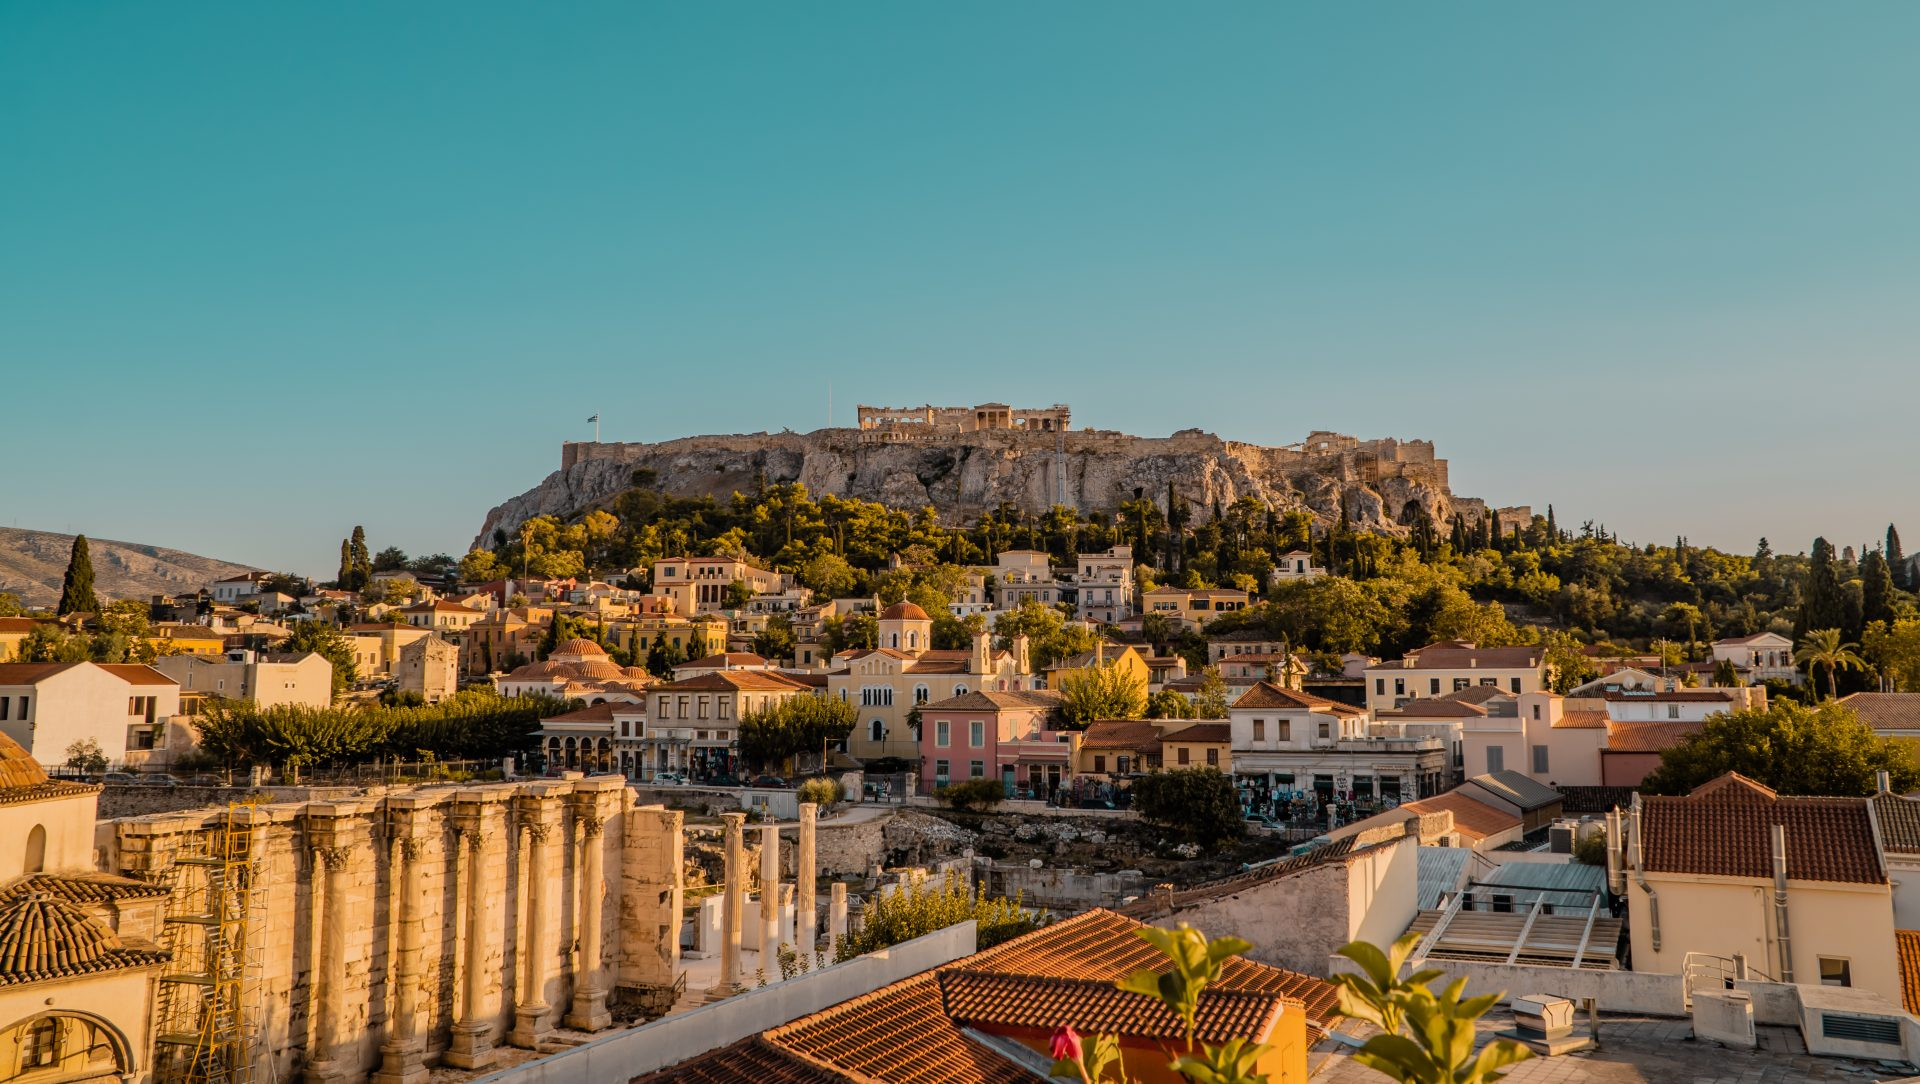 Athens, Greece - September 30, 2020 - beautiful aerial panoramic sunset view of central Athens rooftops with Acropolis, Tzisdarakis Mosque, and Hadrian's Library